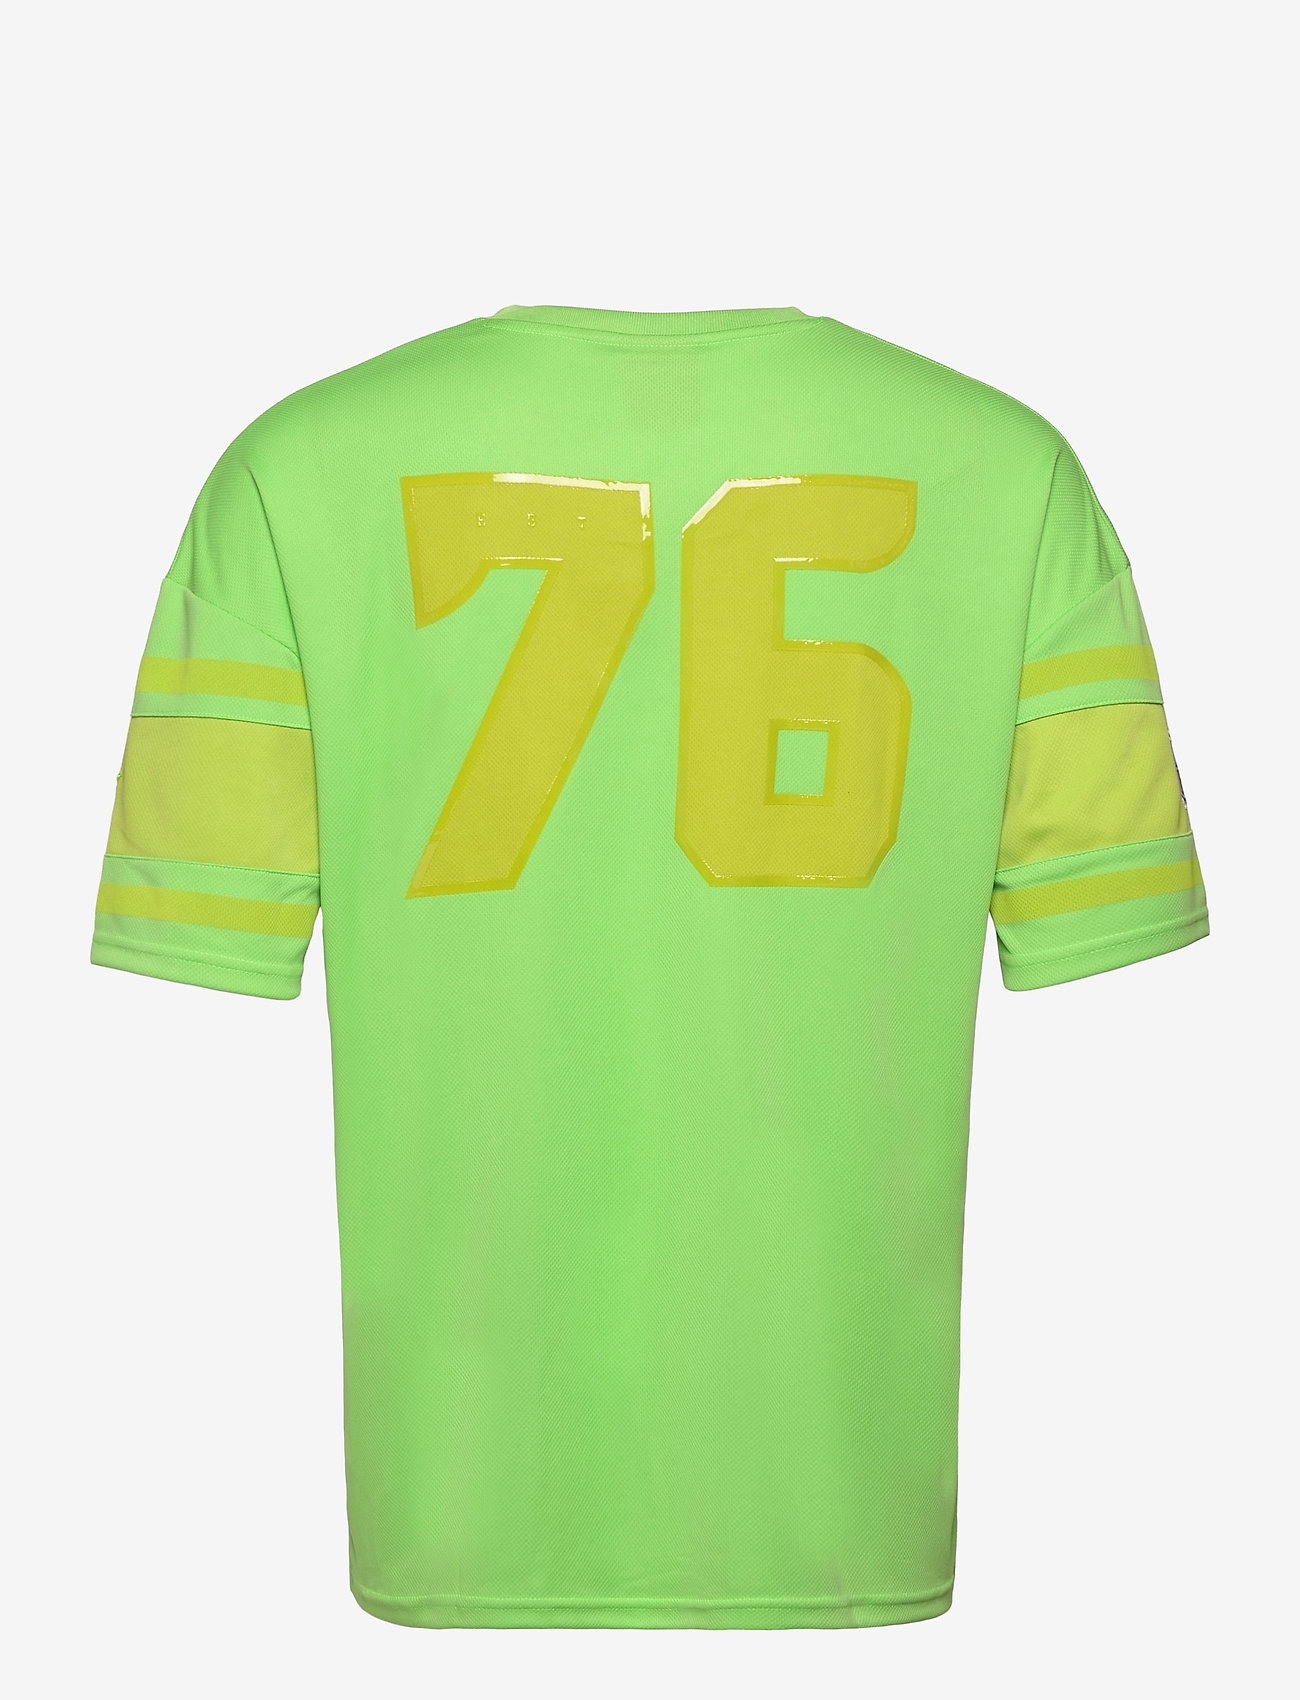 Fanatics - Seattle Seahawks Franchise Poly Mesh Supporters Jersey - t-shirts - lime - 1